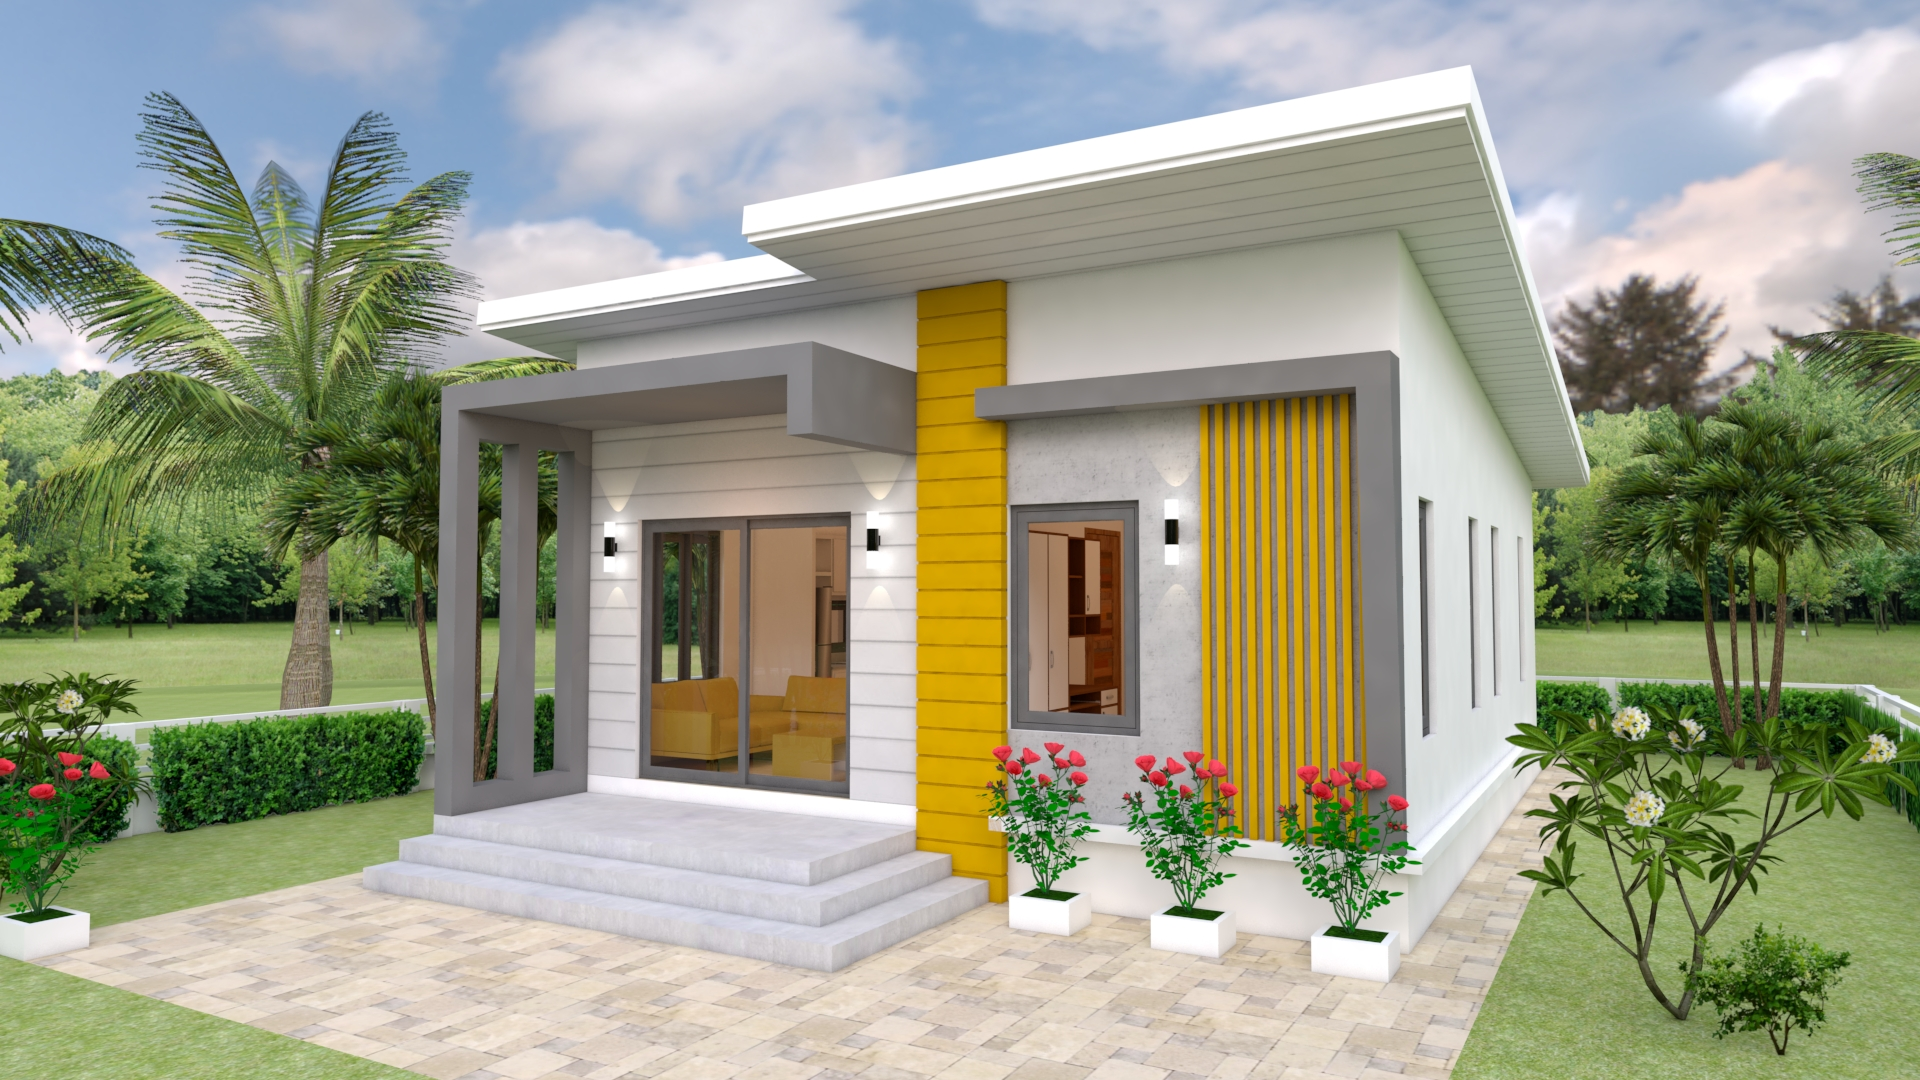 House Design Plans 7x12 with 2 Bedrooms Full Plans ...